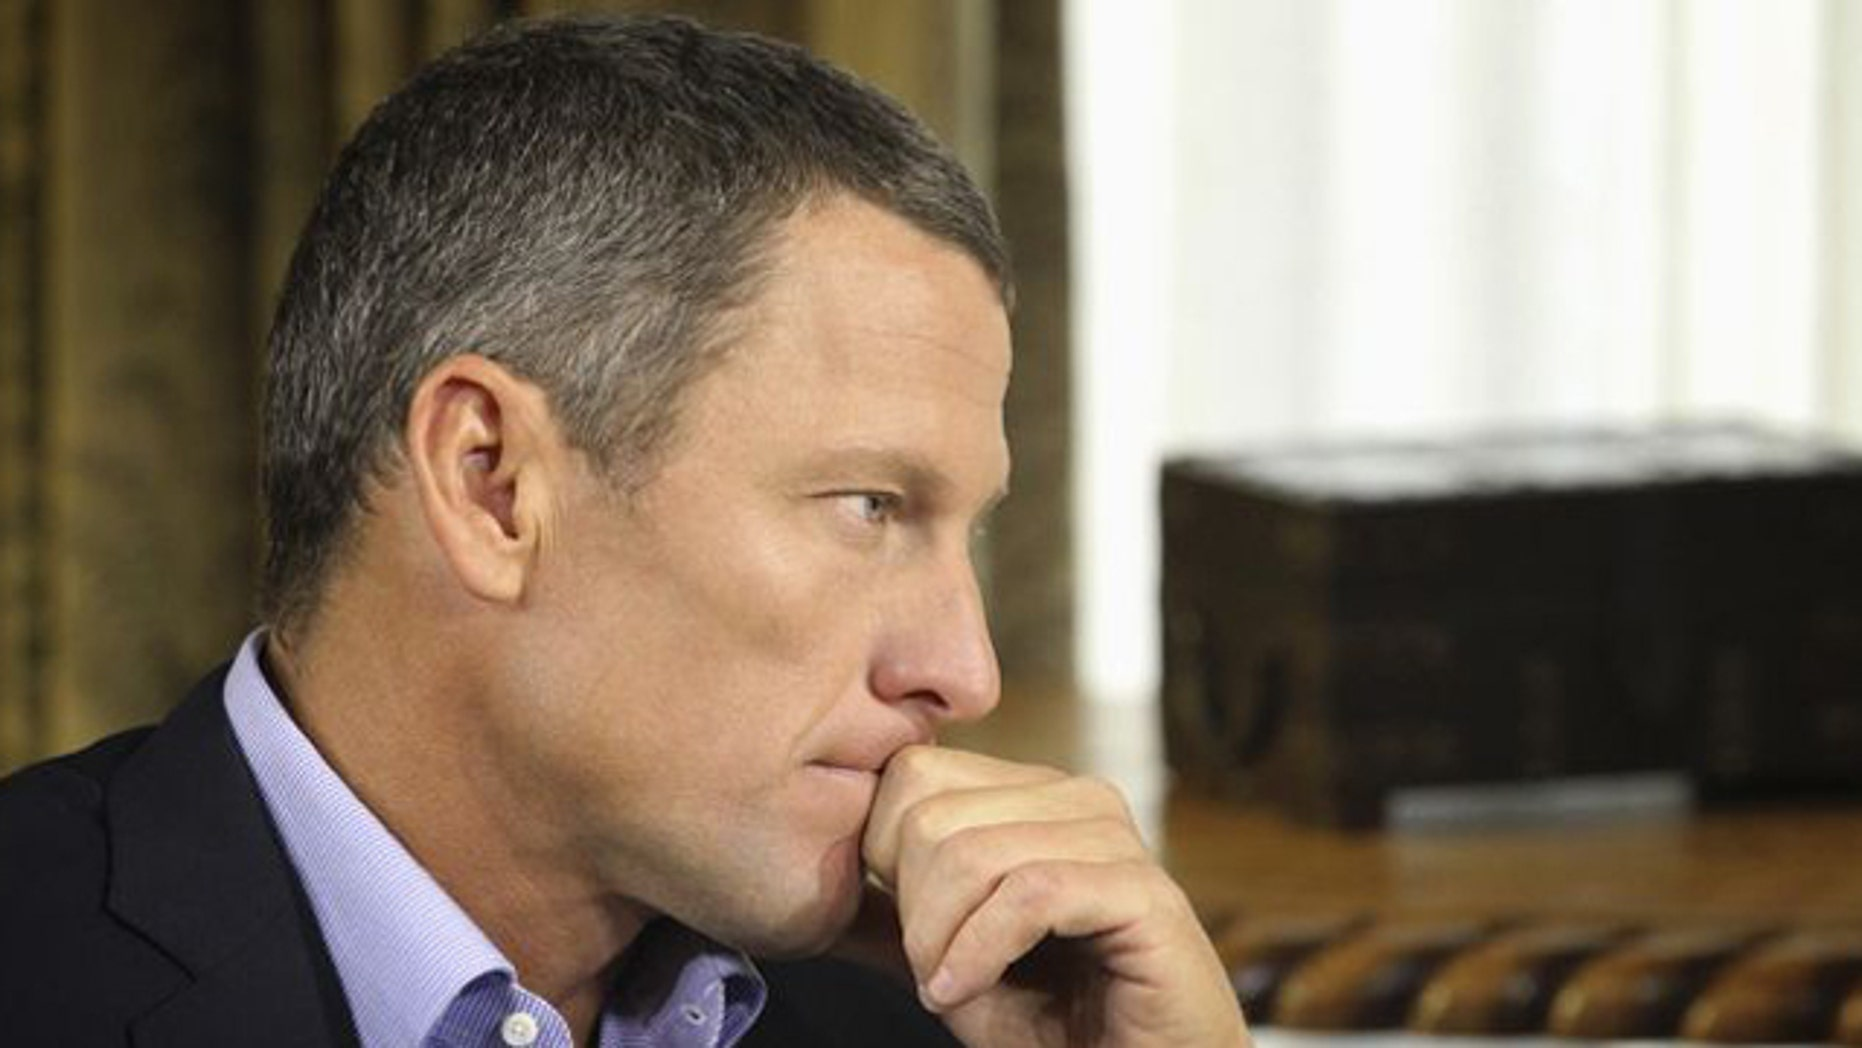 Jan. 14, 2013: Lance Armstrong listens as he is interviewed by talk show host Oprah Winfrey during taping for the show.